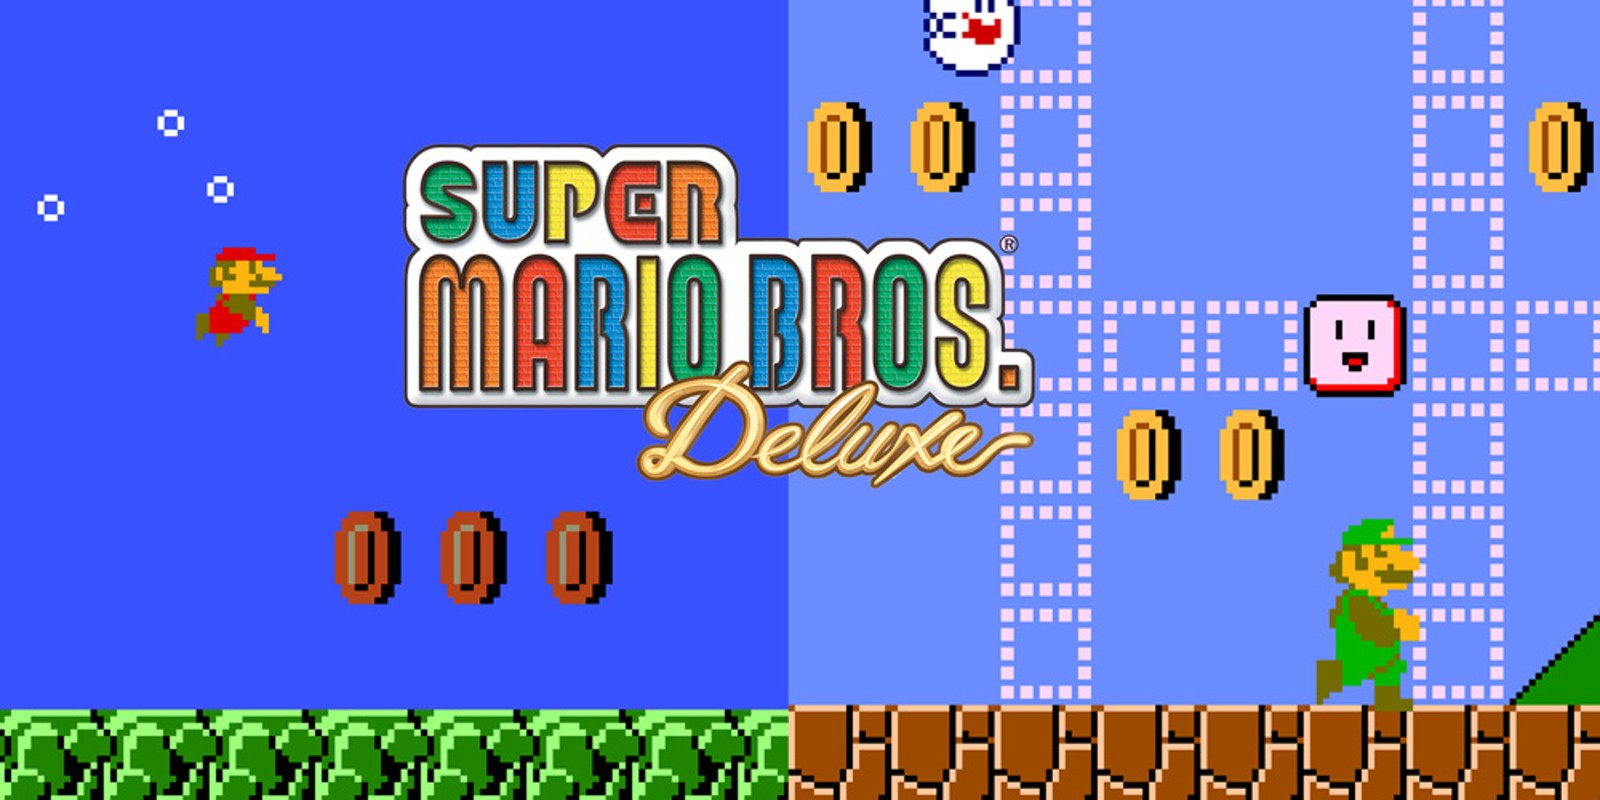 super mario bros 3 virtual console 3ds release date Super mario bros 3 is headed to the nintendo 3ds virtual console in japan nintendo will release the game on january 1st for 500 yen super mario bros 3 was the game that introduced the tanooki suit and the super leaf to the series.